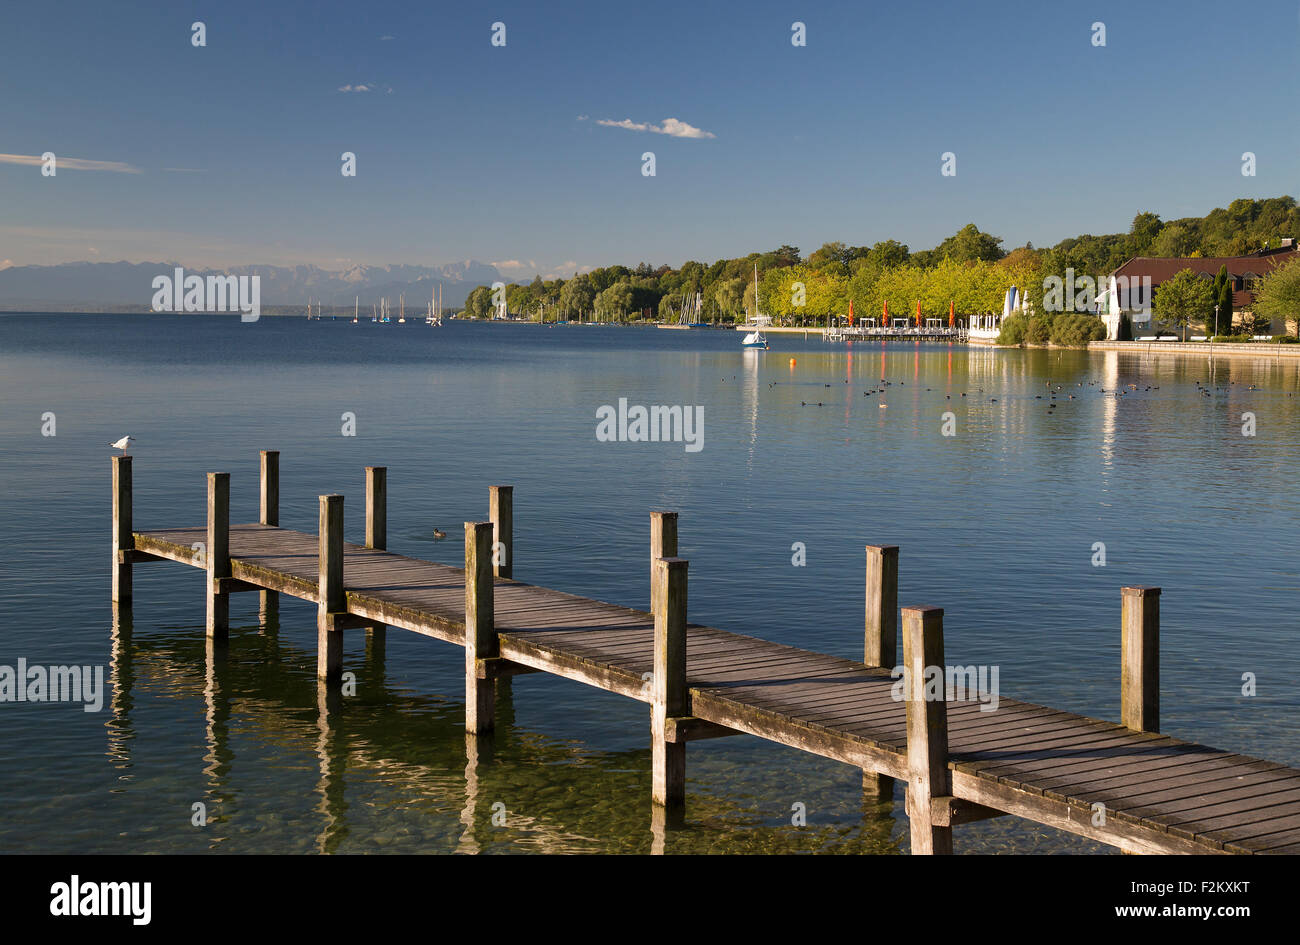 Starnberg See Lake Bavaria Germany old wooden jetties and boat moorings peaceful lake scene - Stock Image